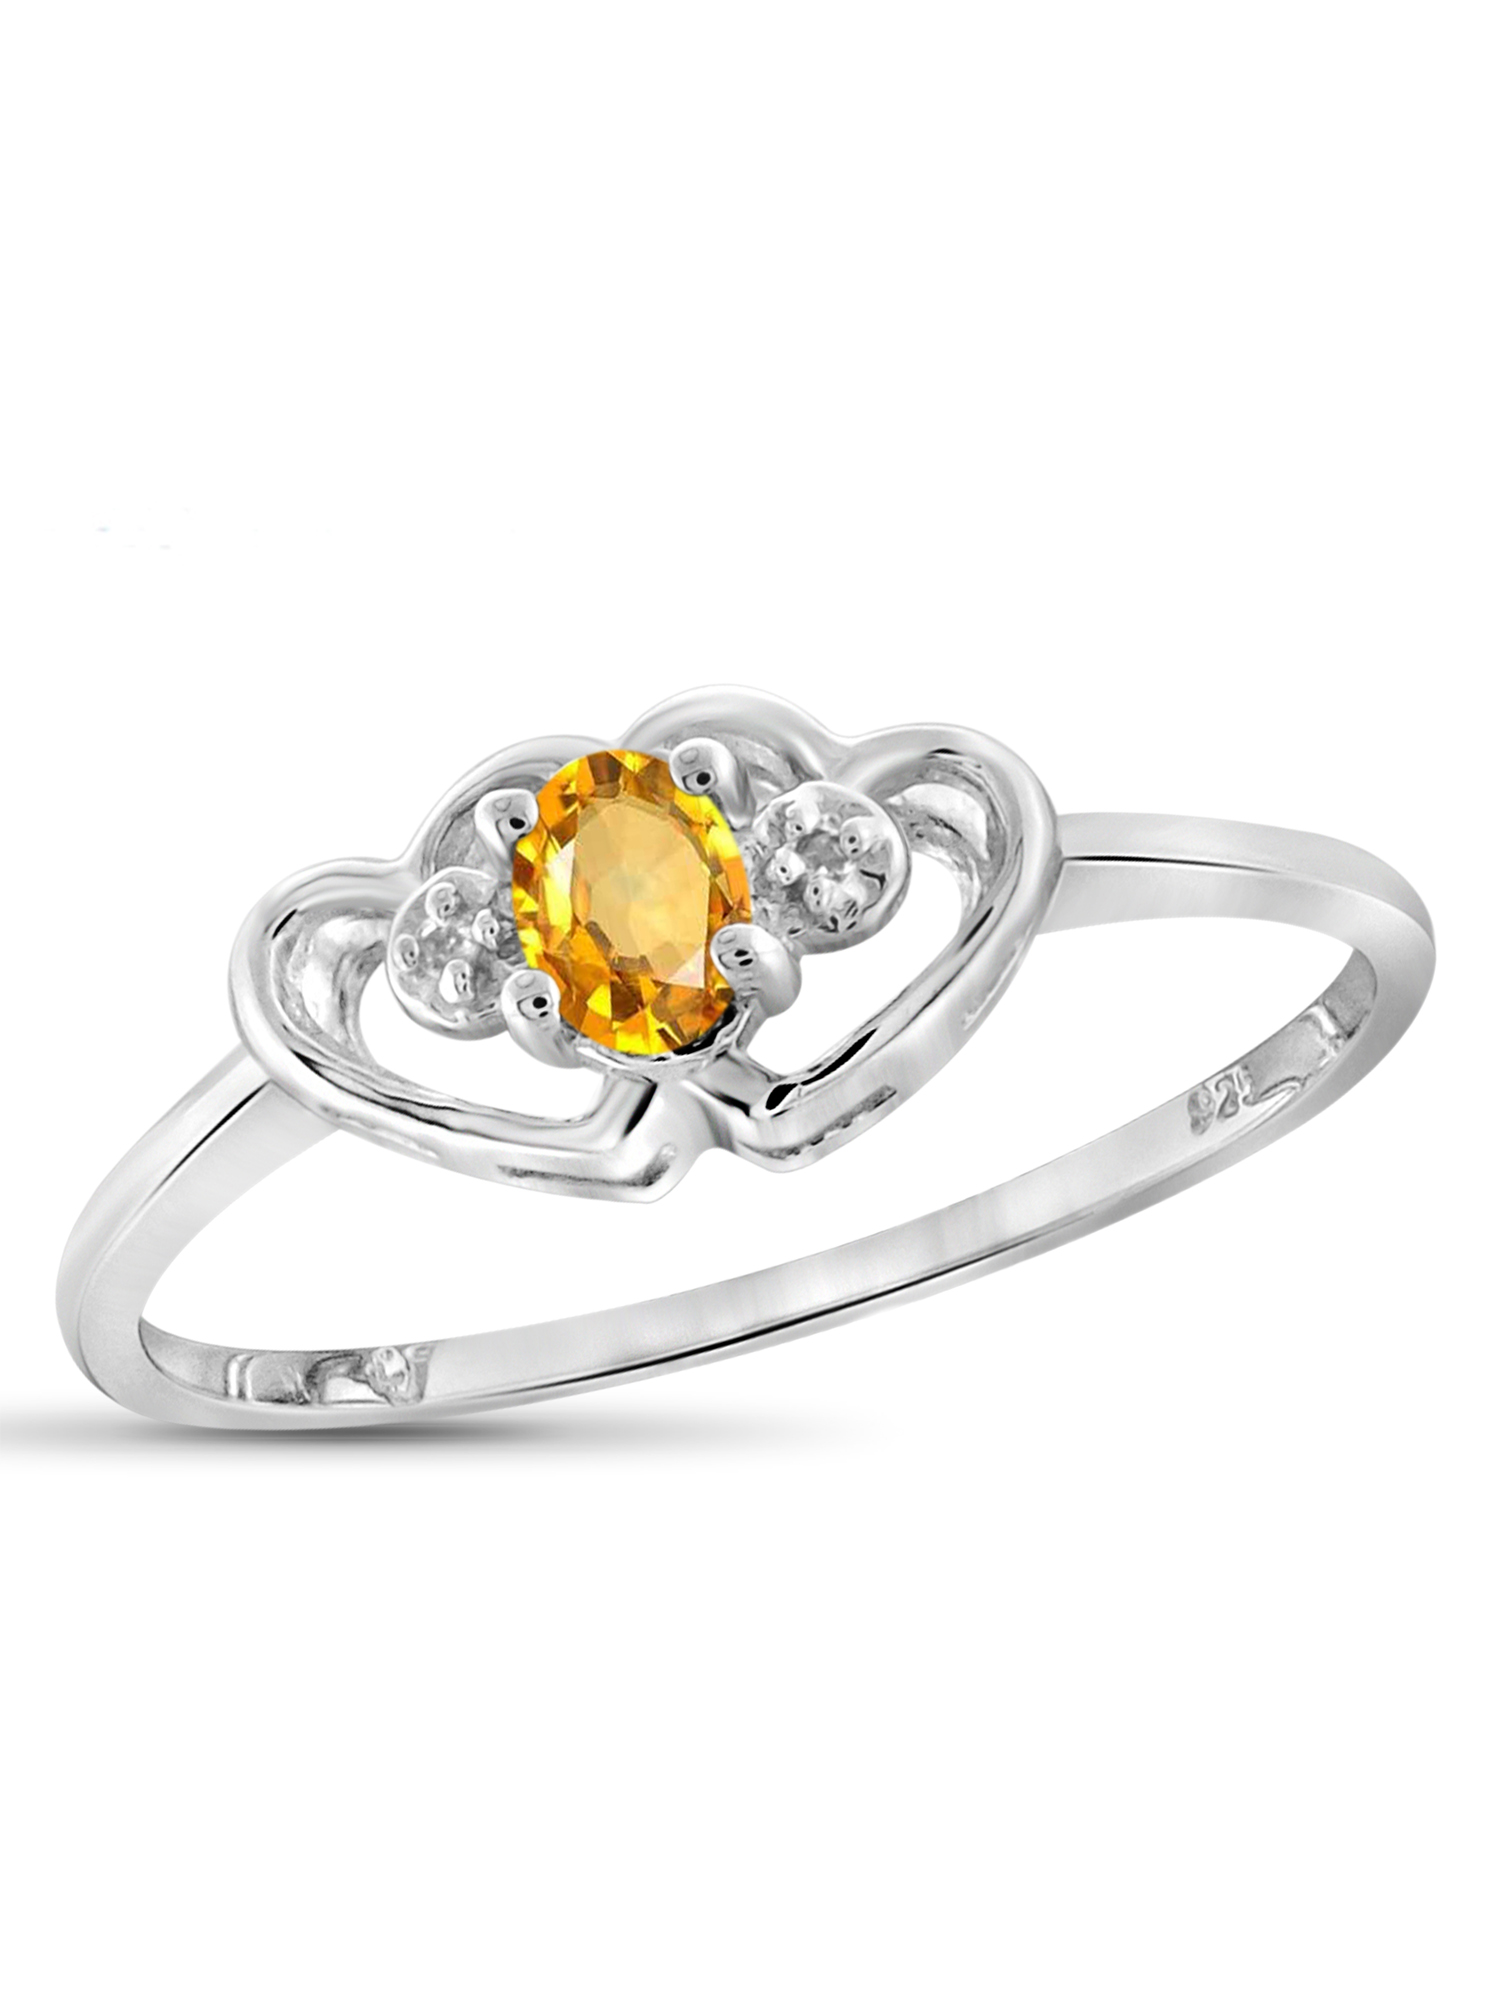 JewelersClub 0.18 Carat T.G.W. Citrine Gemstone and White Diamond Accent Ring